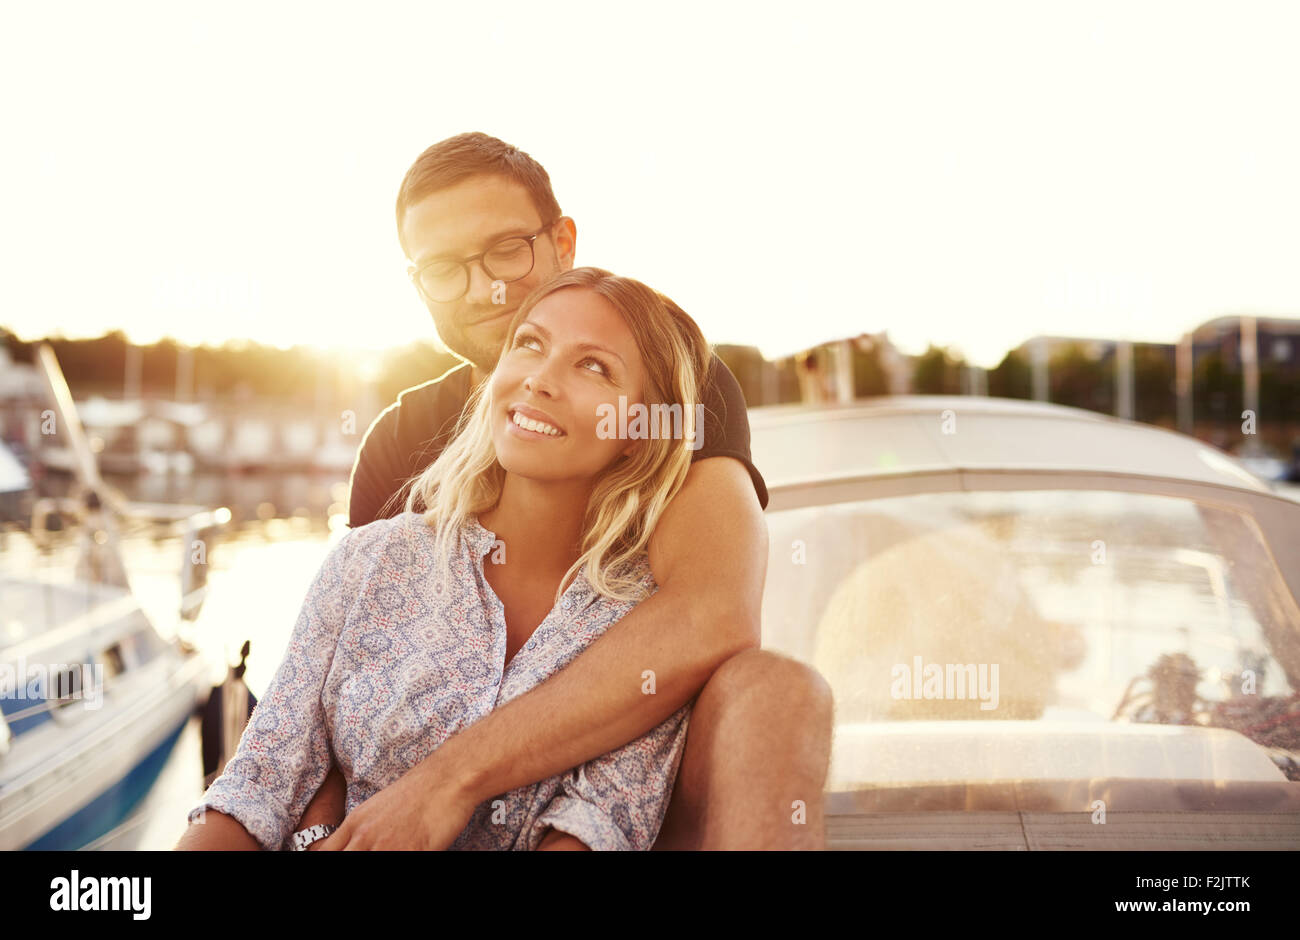 Happy Couple On a Boat, Enjoying Life while In Love - Stock Image